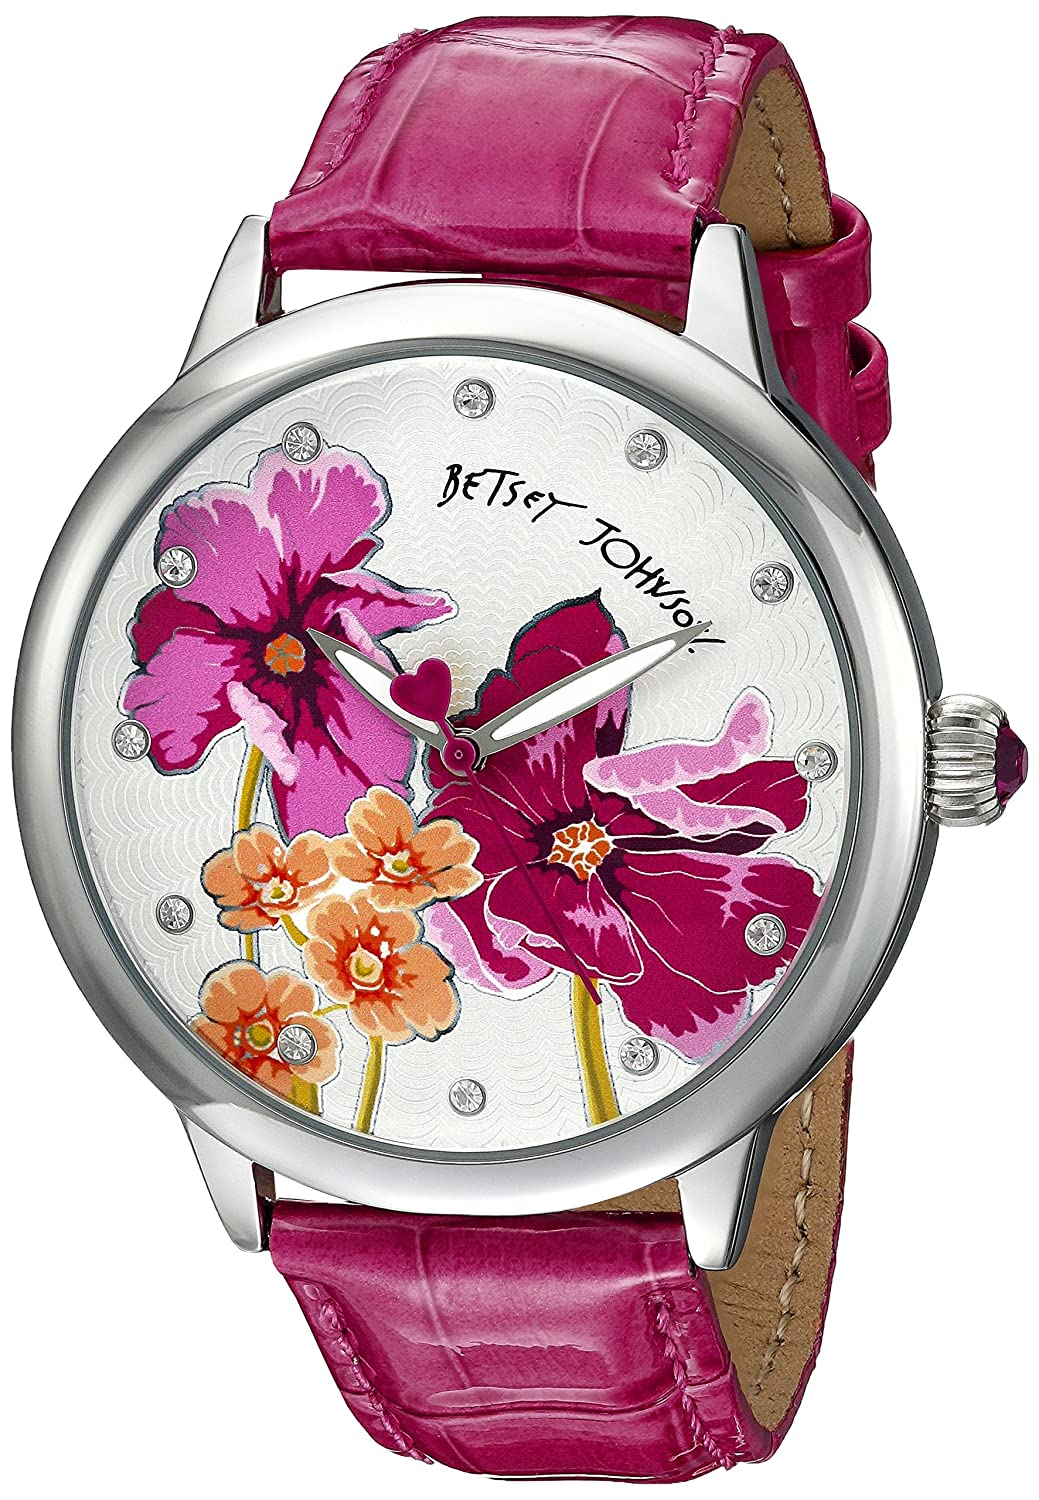 Betsey Johnson Women's BJ00280-15 Analog Display Quartz Pink Watch